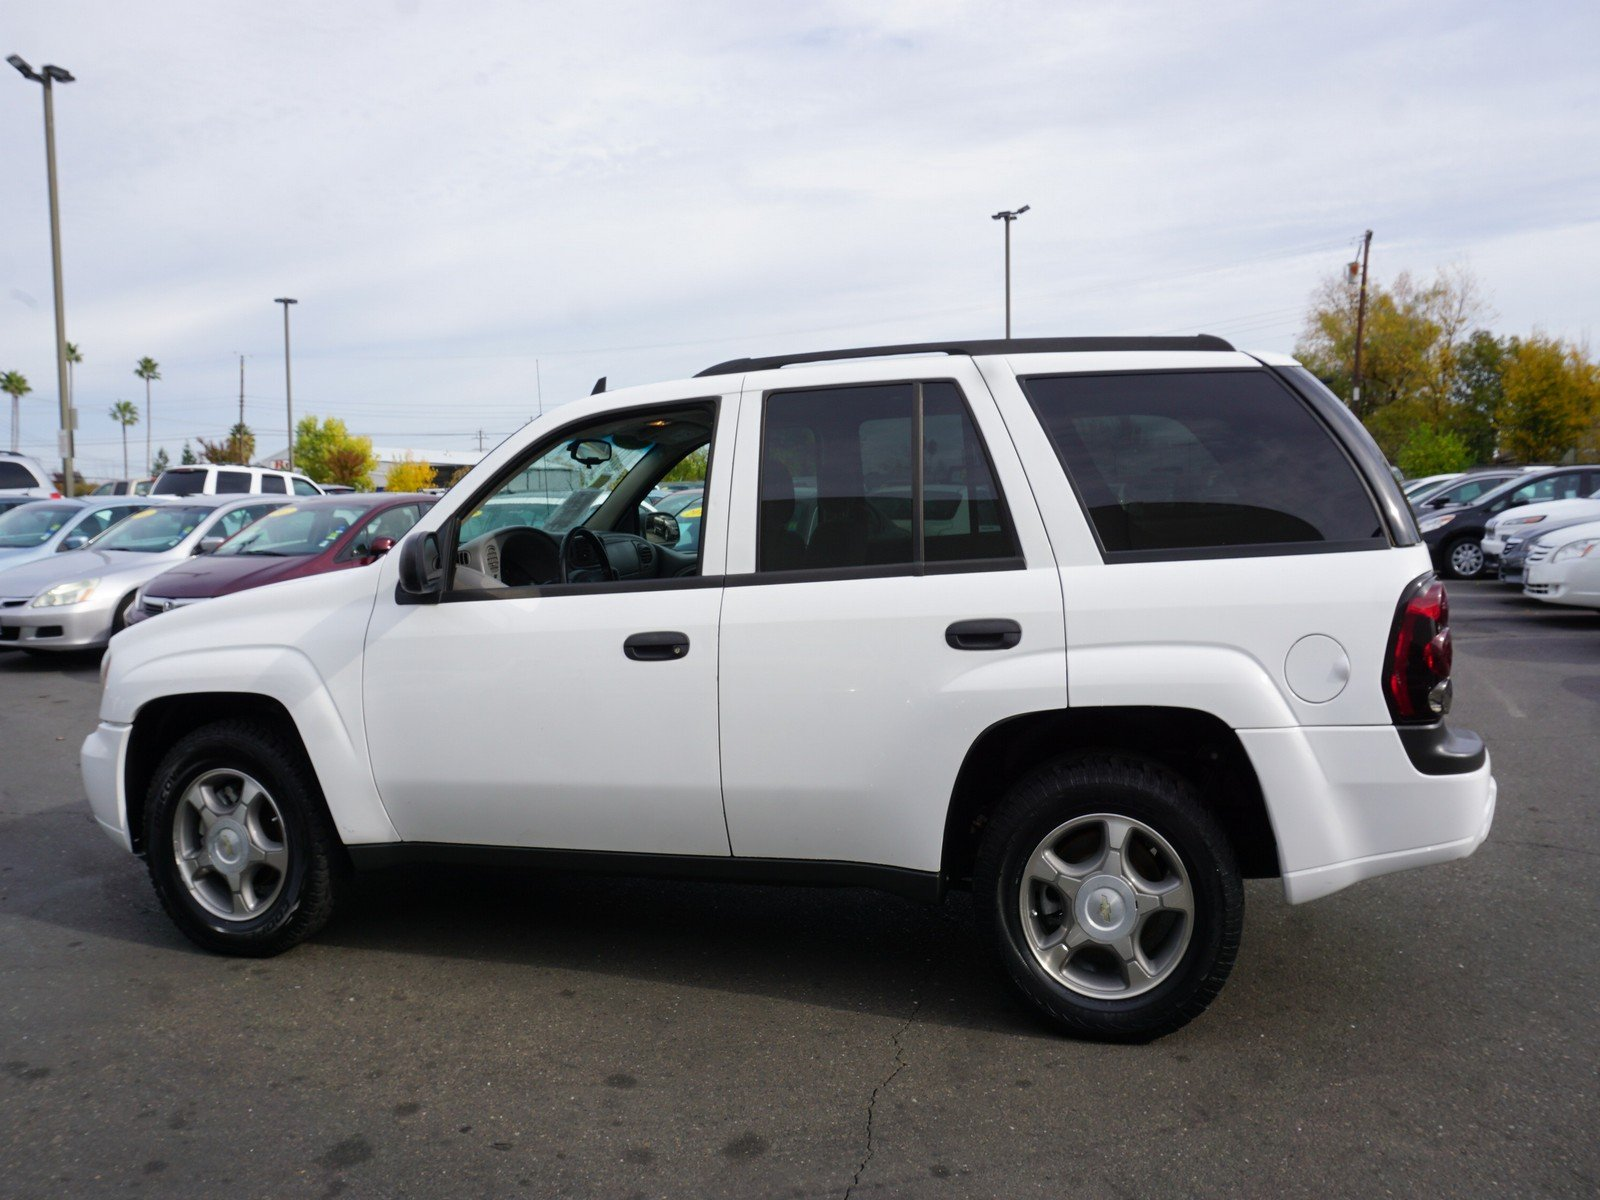 Pre Owned 2008 Chevrolet TrailBlazer Fleet with 1FL Sport Utility in